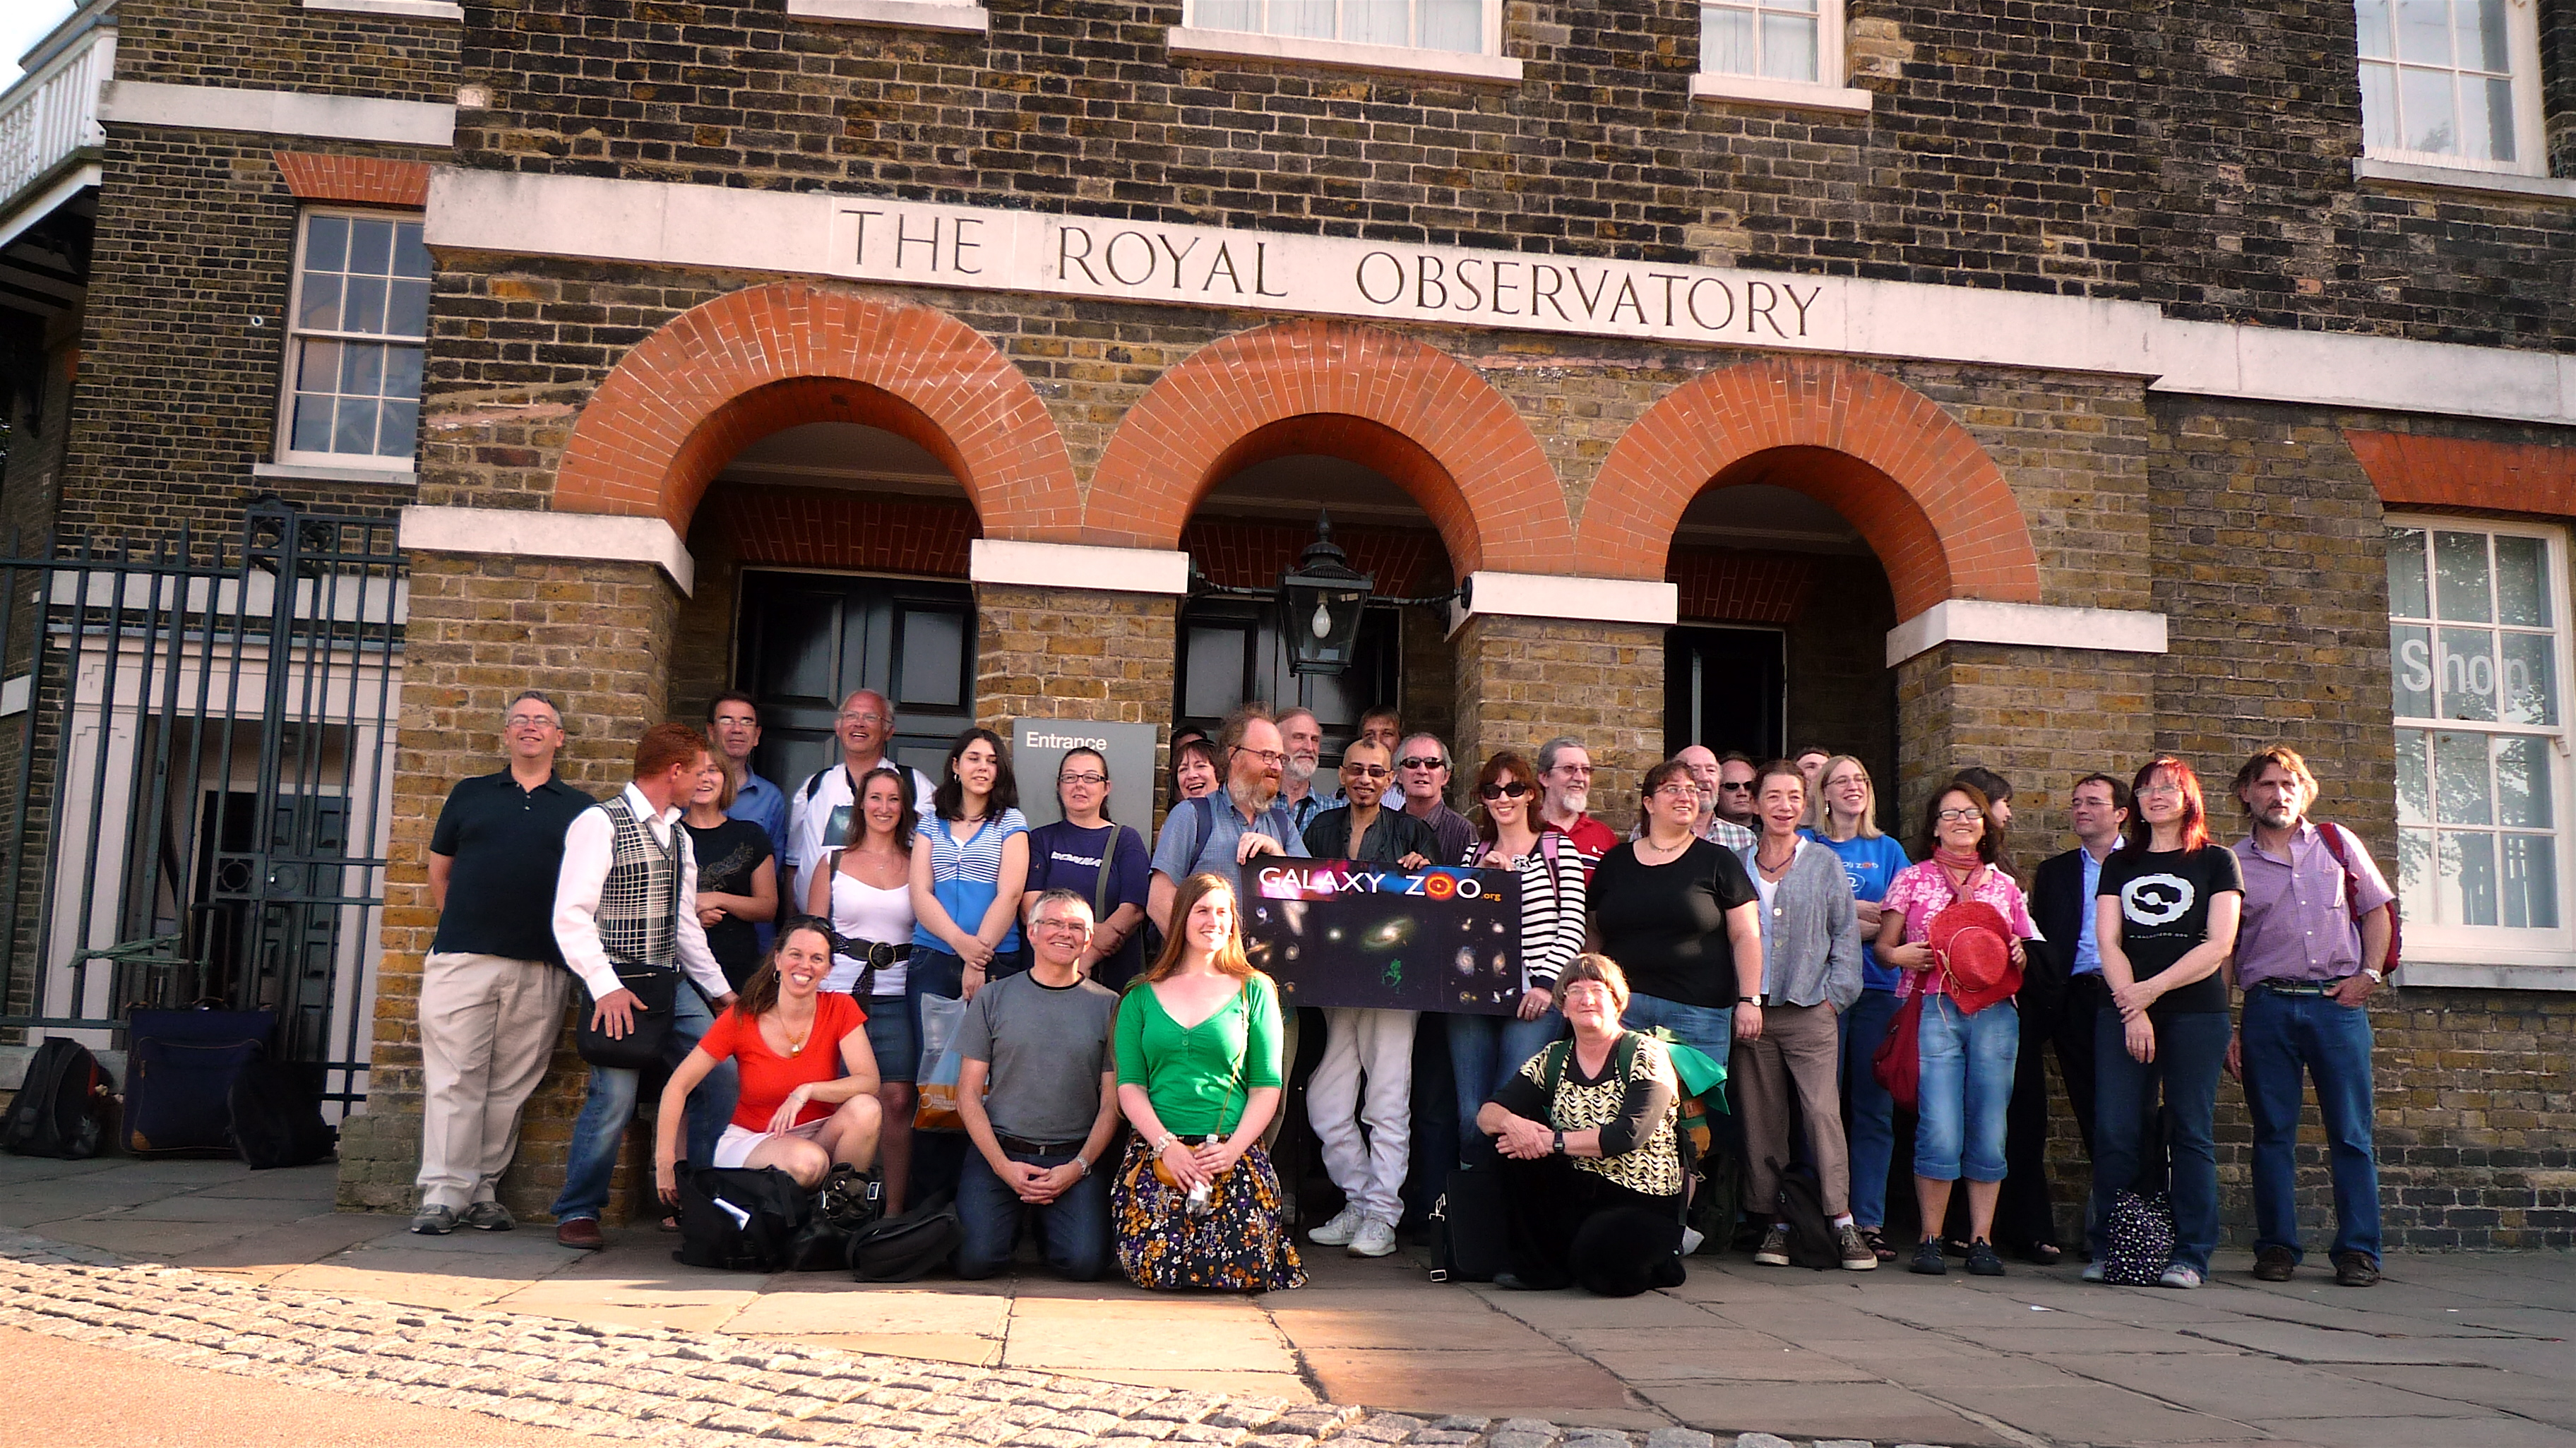 The self-described 'zooites', or citizen scientists, at the Royal Observatory